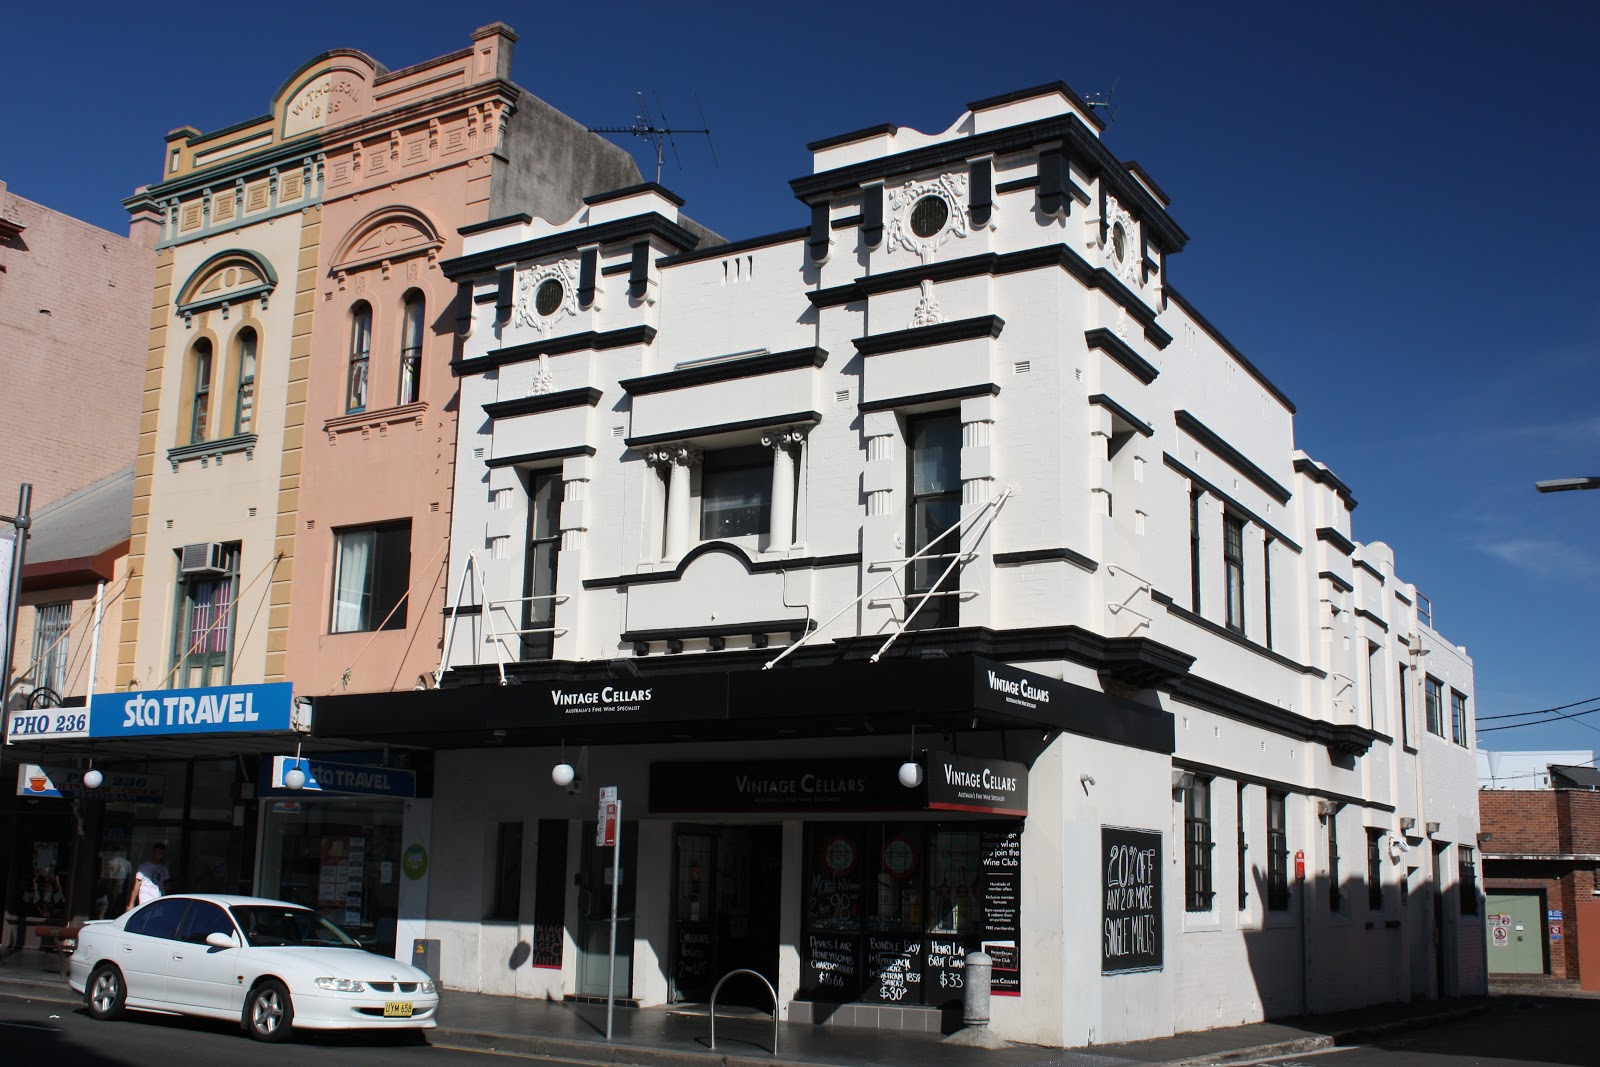 These heritage listed buildings are located along King Street on the corner of Whateley Street in the inner city suburb of Newtown. & Sydney - City and Suburbs: February 2016